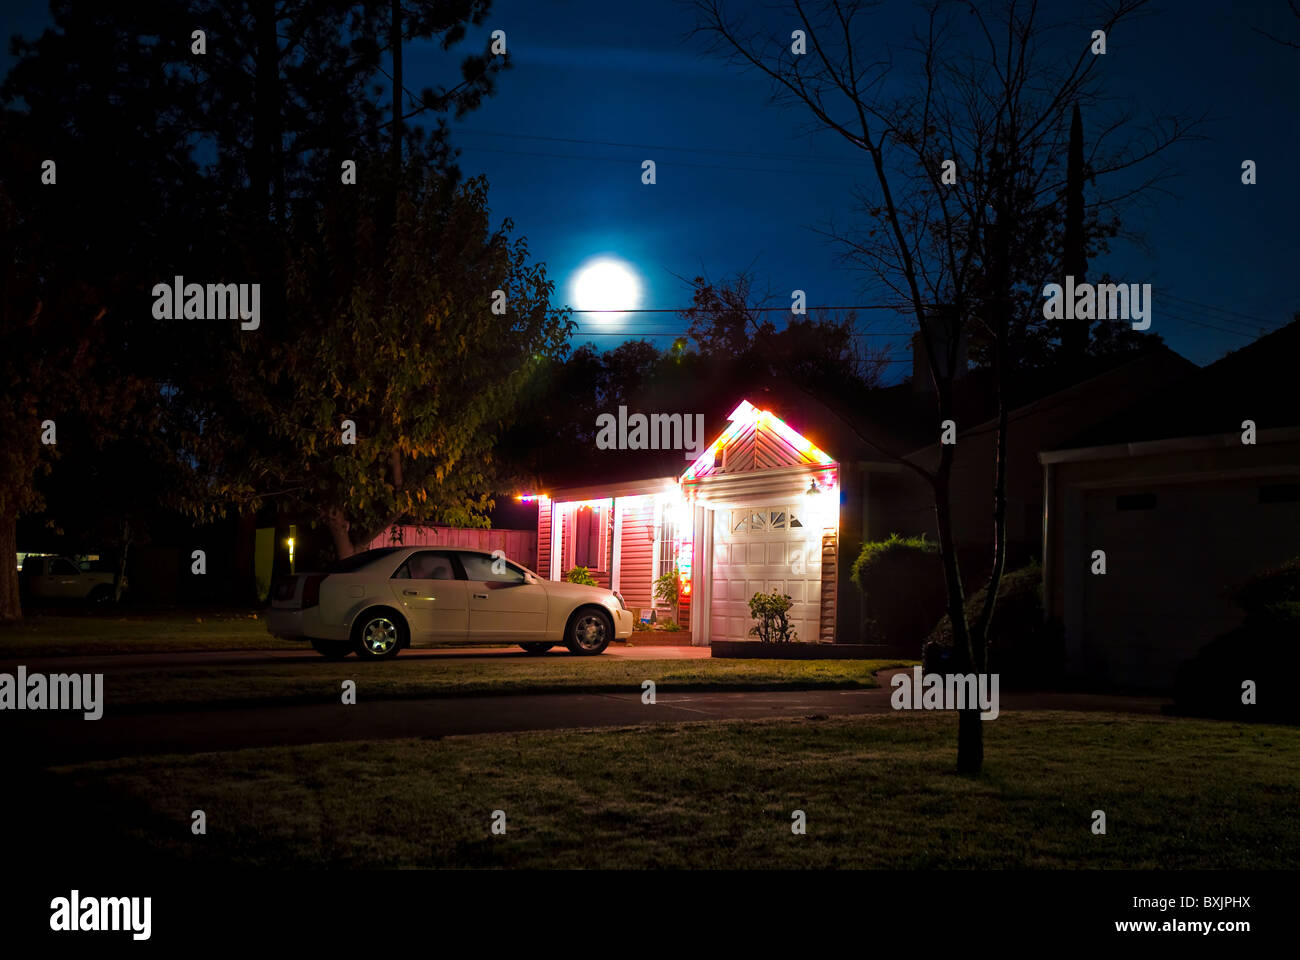 Moon shines above a house decorated with Christmas lights Stock Photo